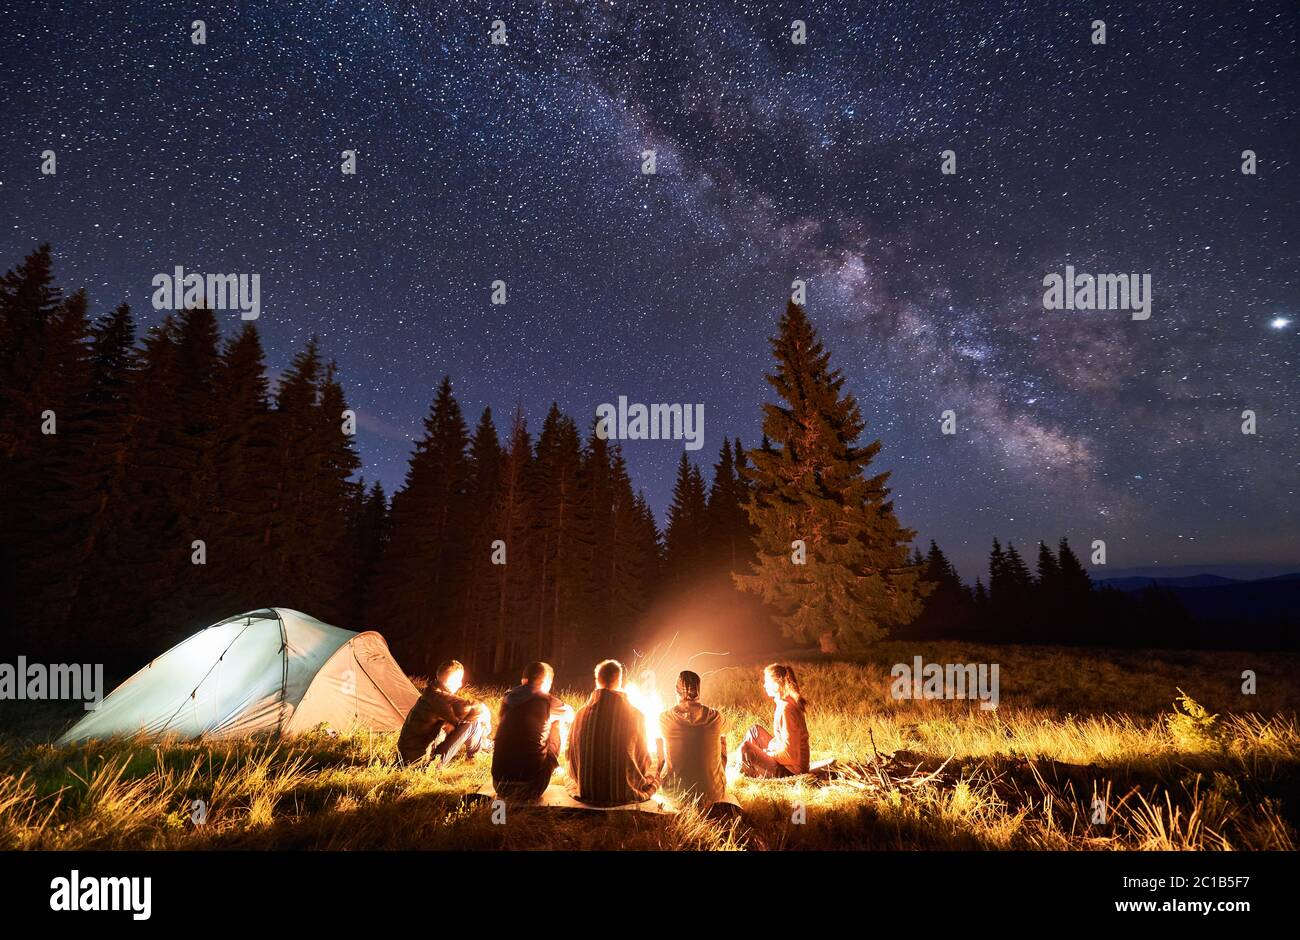 Night summer camping in the mountains, spruce forest on background, sky with stars and milky way. Back view group of five tourists having a rest together around campfire, enjoying fresh air near tent. Stock Photo